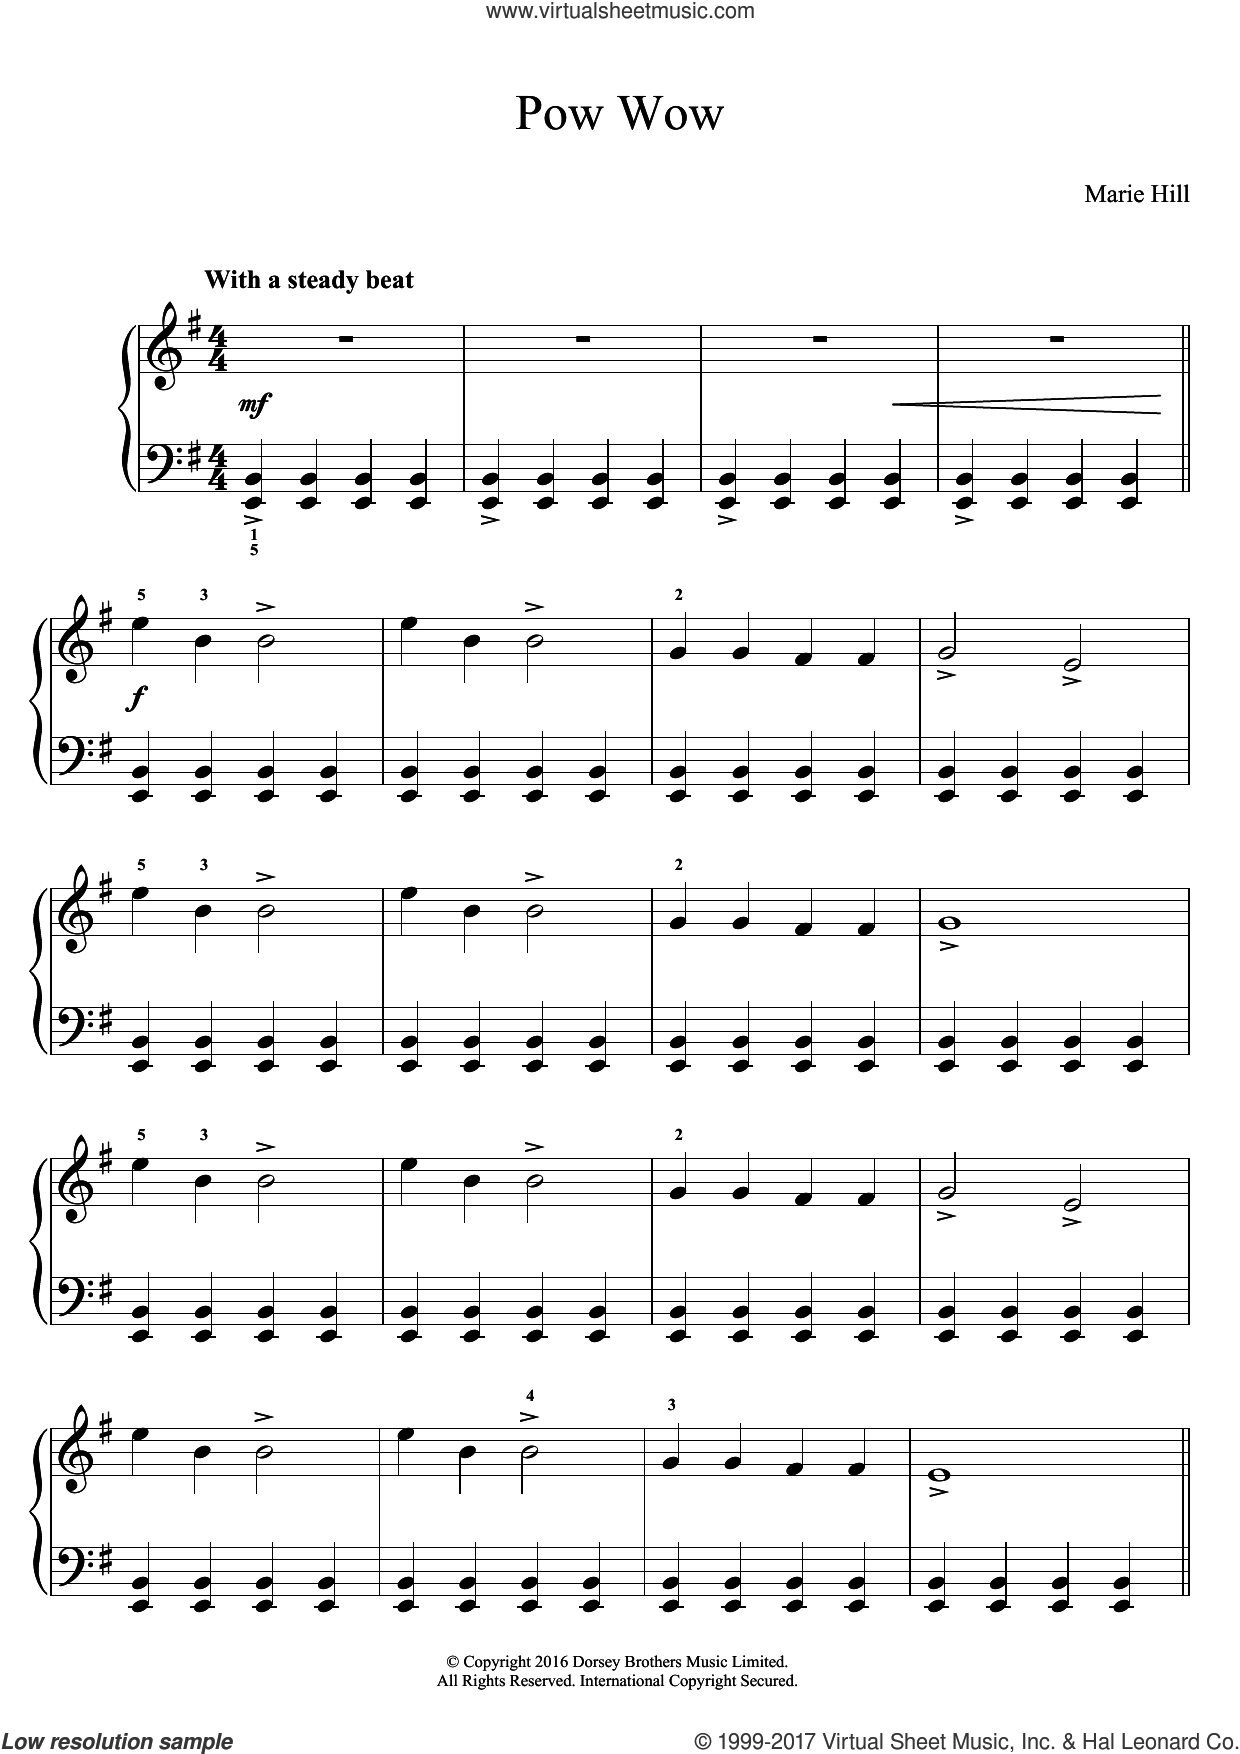 Pow Wow sheet music for piano solo by Marie Hill, classical score, easy skill level